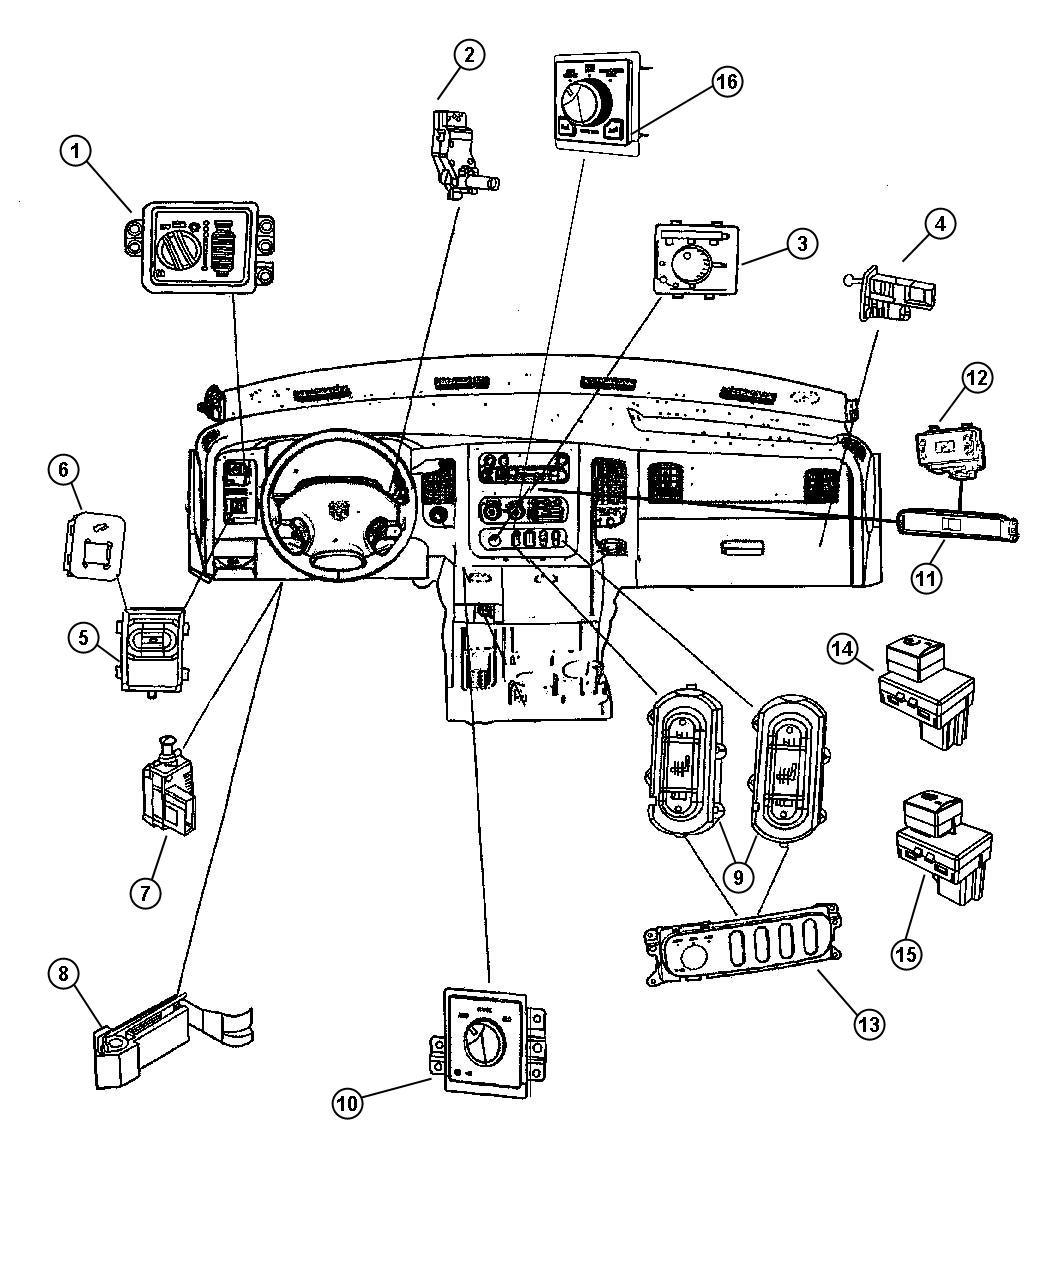 [DIAGRAM] 2002 Dodge Ram 1500 Power Window Wiring Diagram